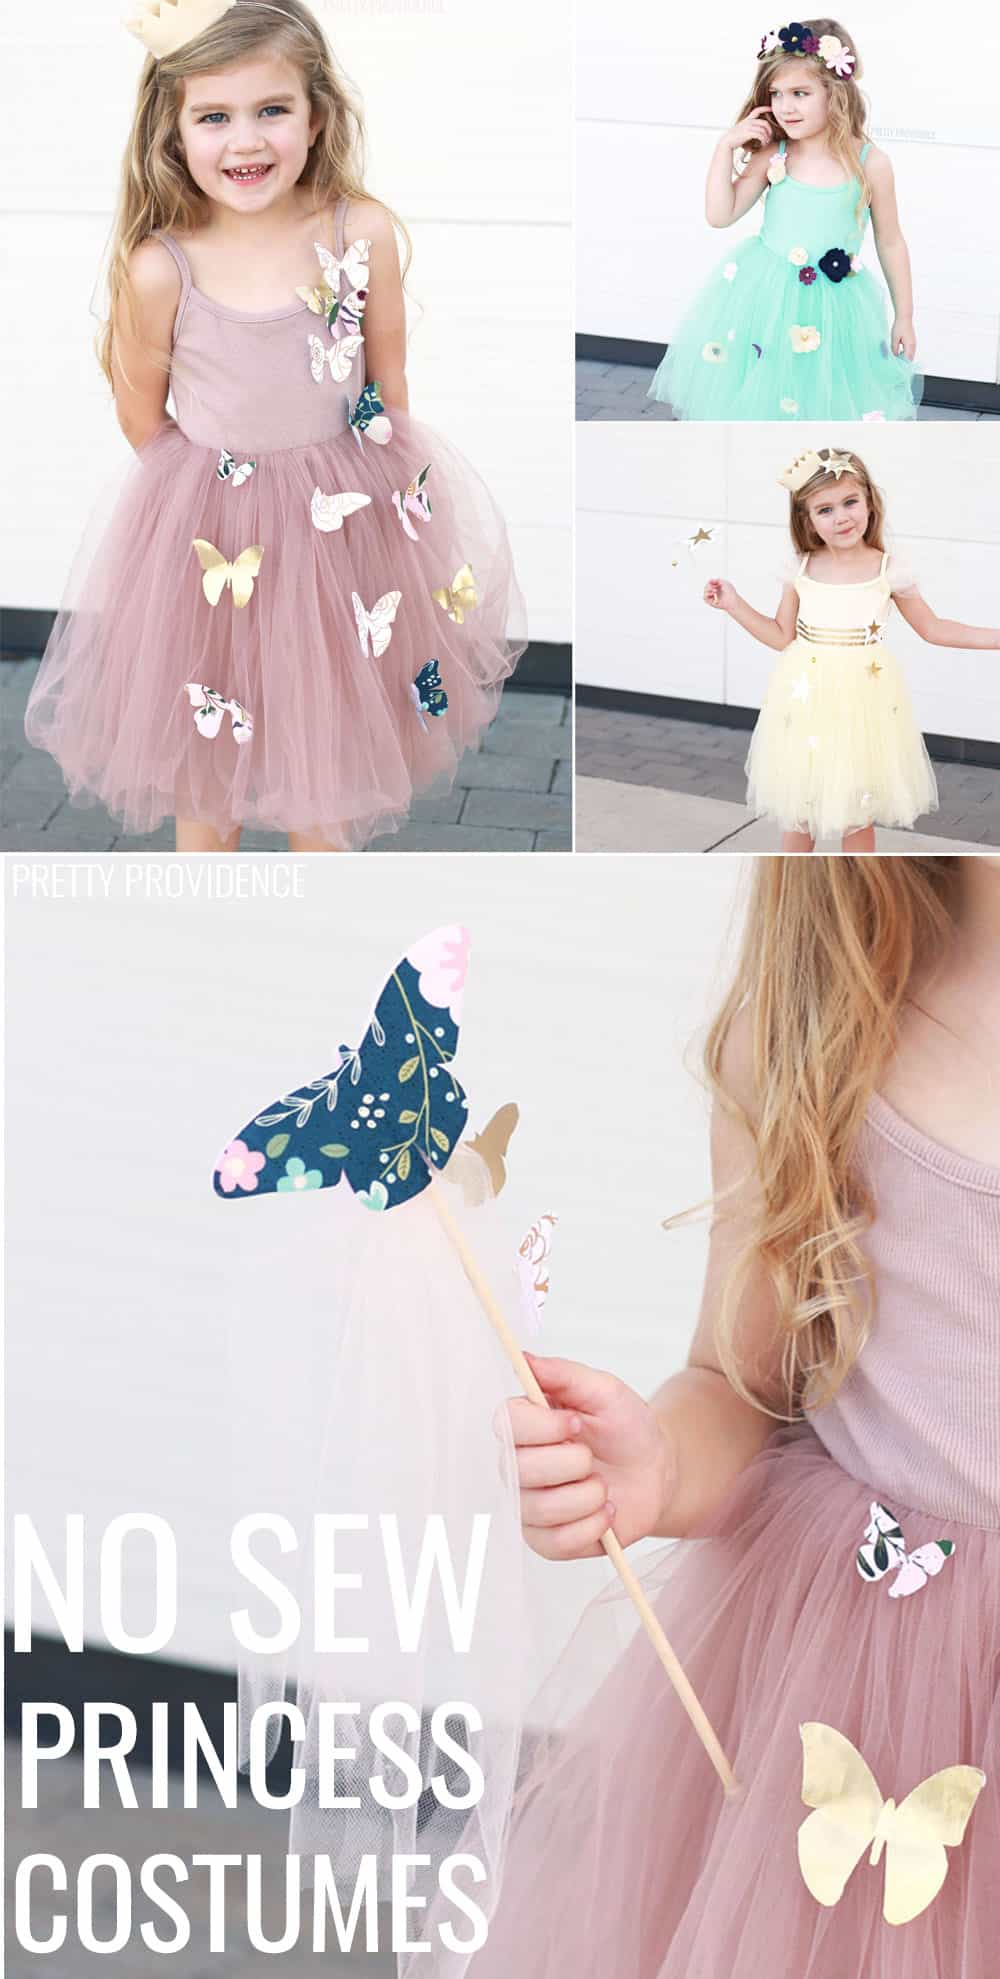 DIY No Sew Princess Costumes!!! So fun to make and the little ones love them!